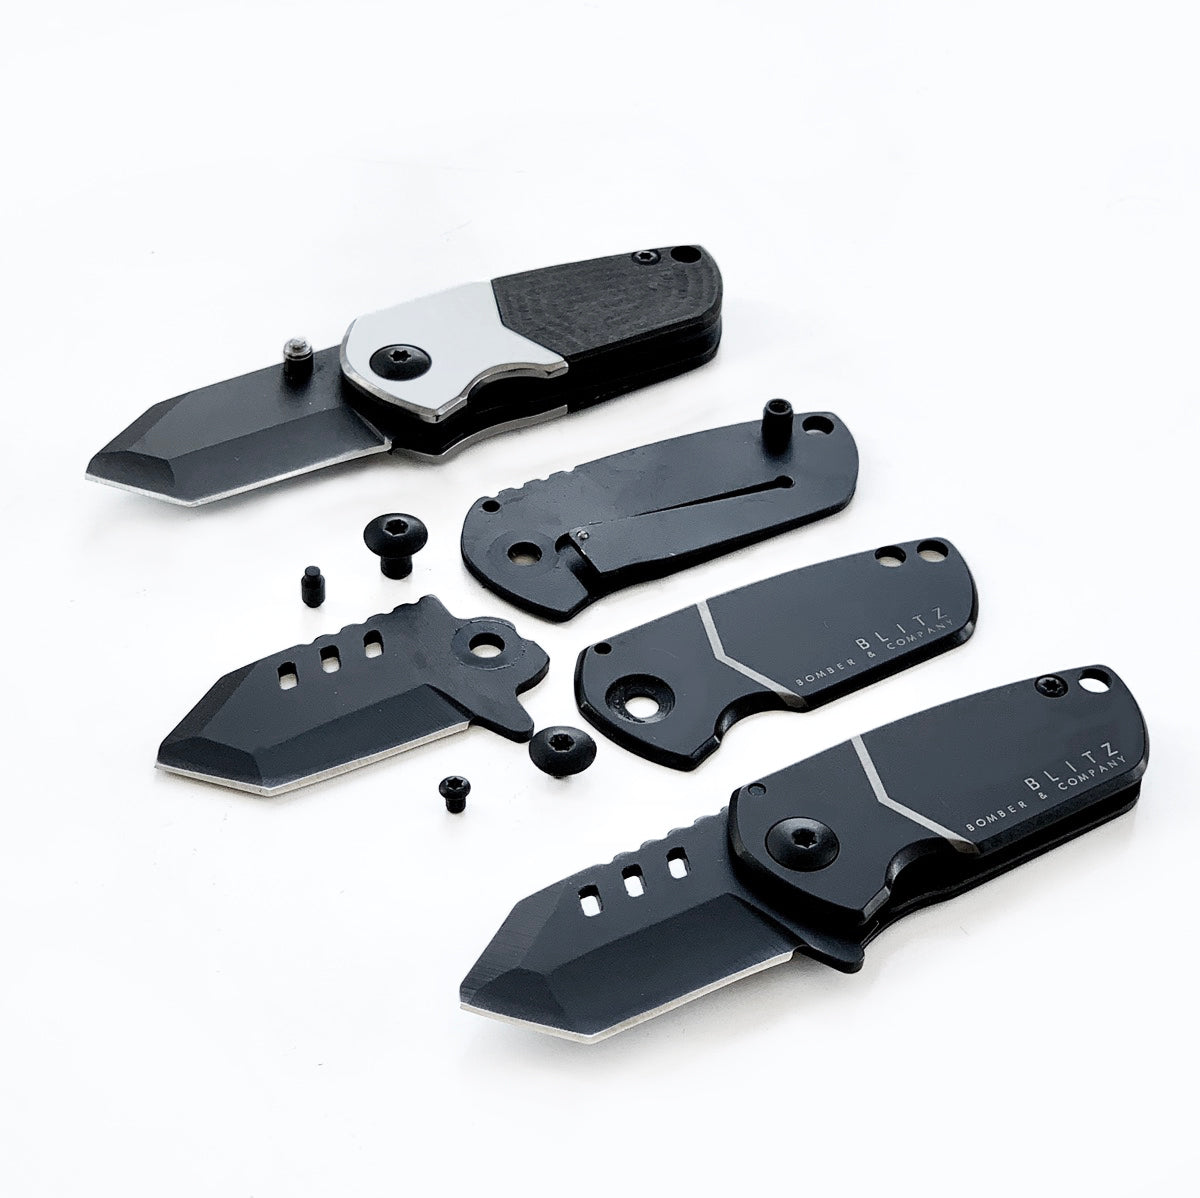 BLITZ Pocket Knife (Straight Edge)